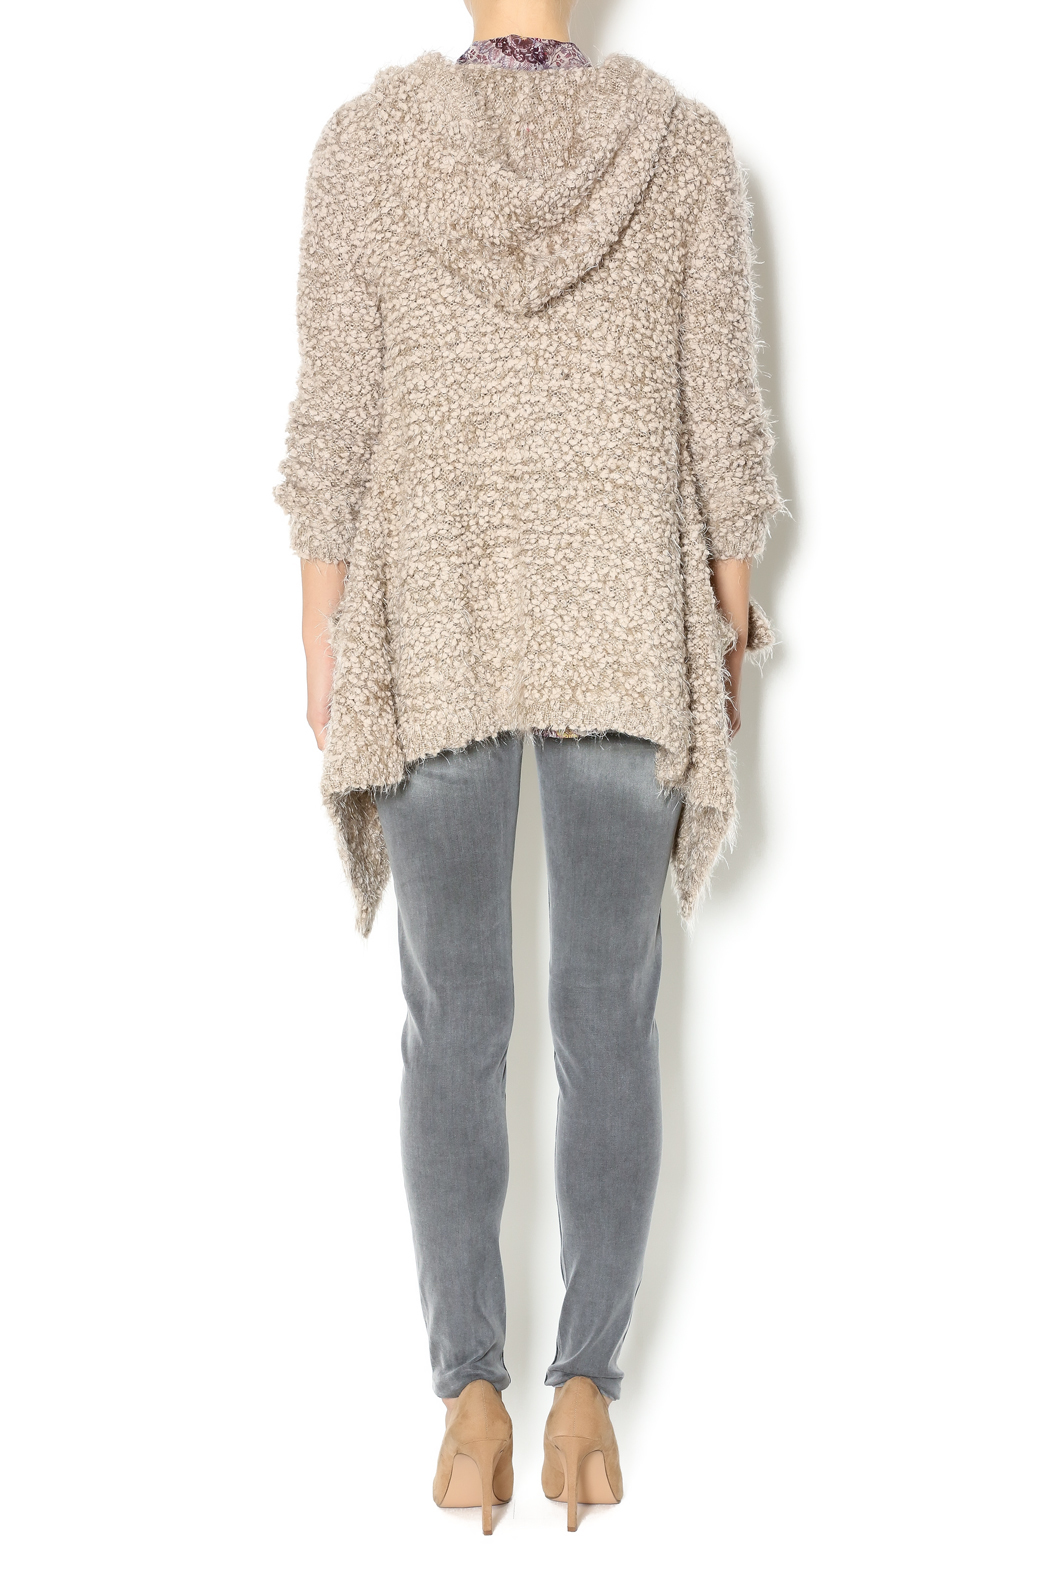 WILLIAM B Fuzzy Hooded Cardigan from Los Angeles by WILLIAM B   ...